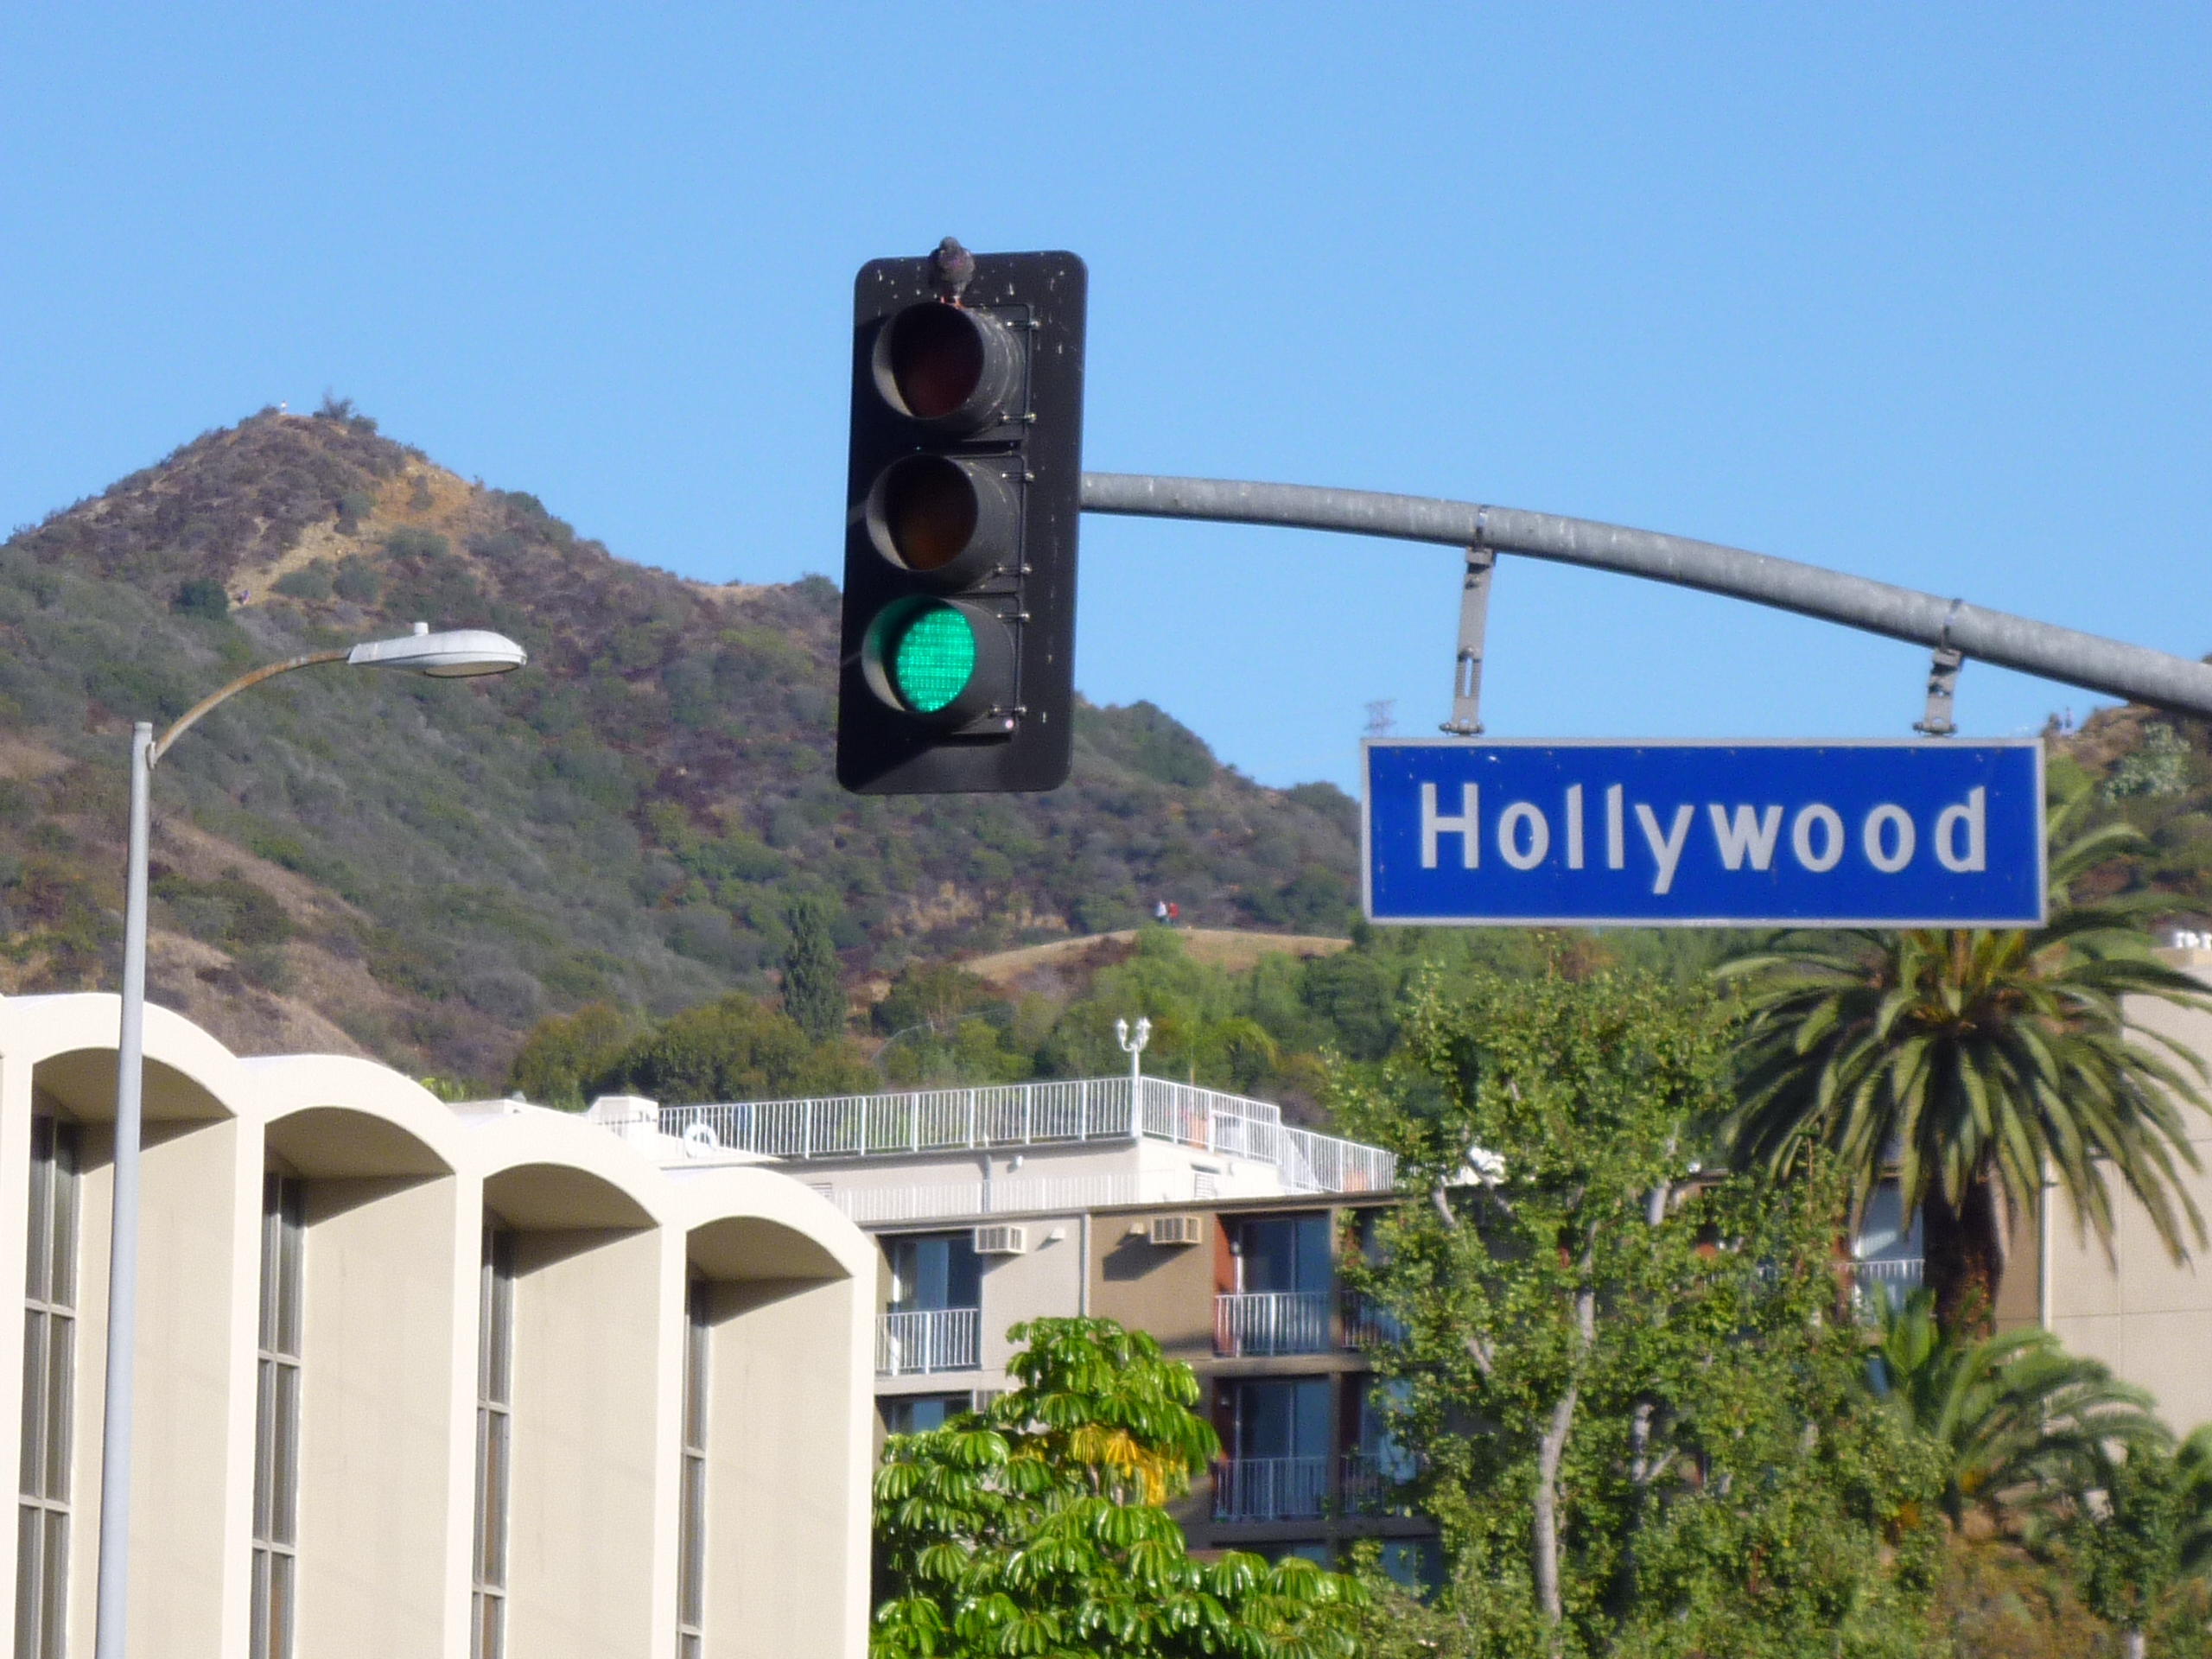 Things to do in Hollywood